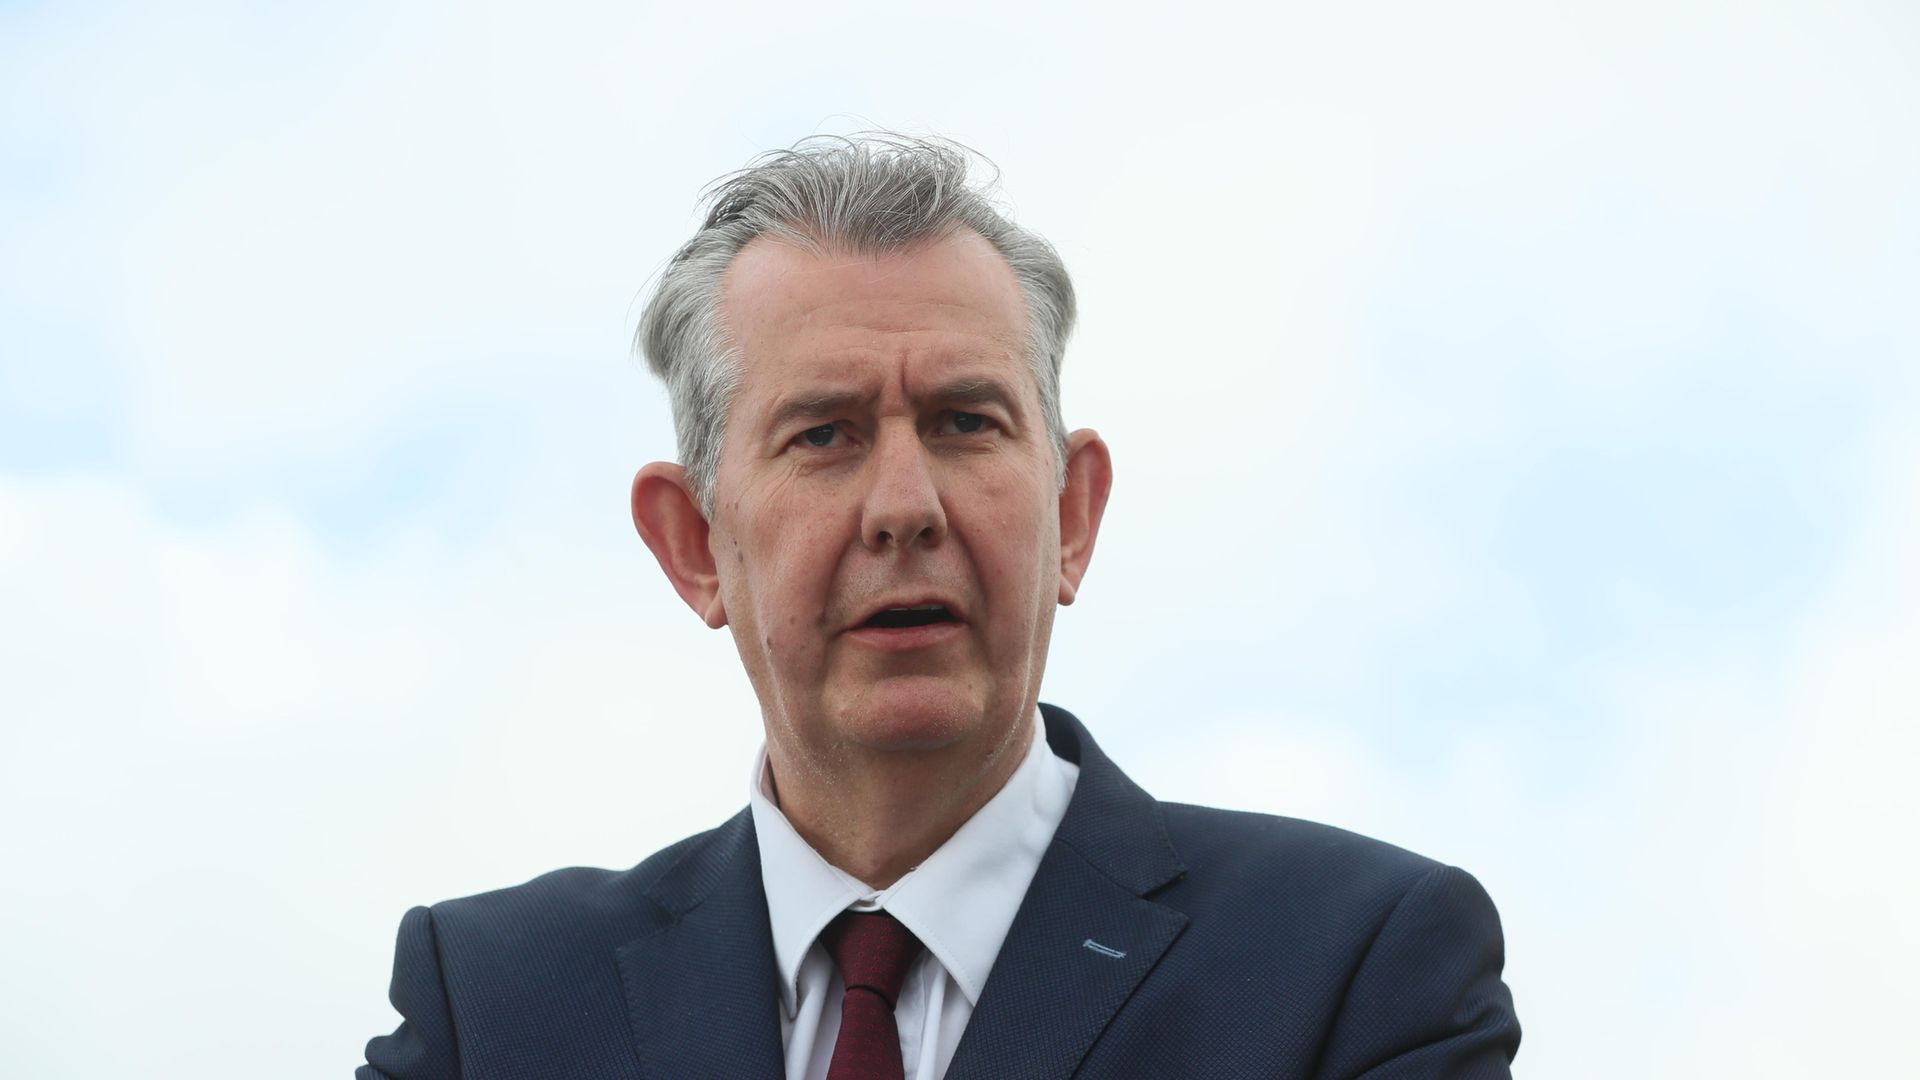 Democratic Unionist Party new elected leader Edwin Poots at Stormont, Belfast - Credit: PA